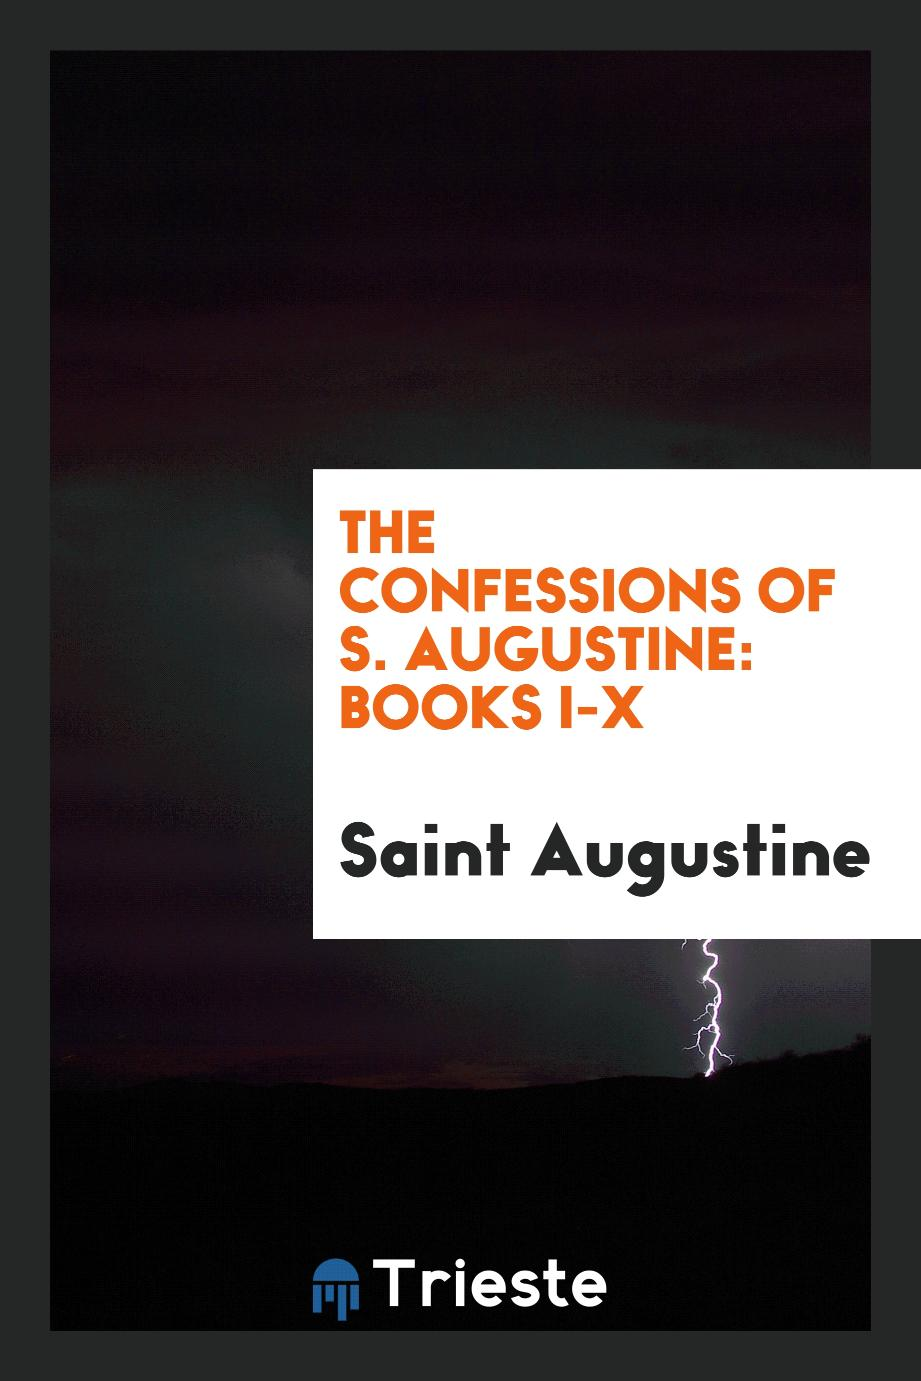 The confessions of S. Augustine: books I-X